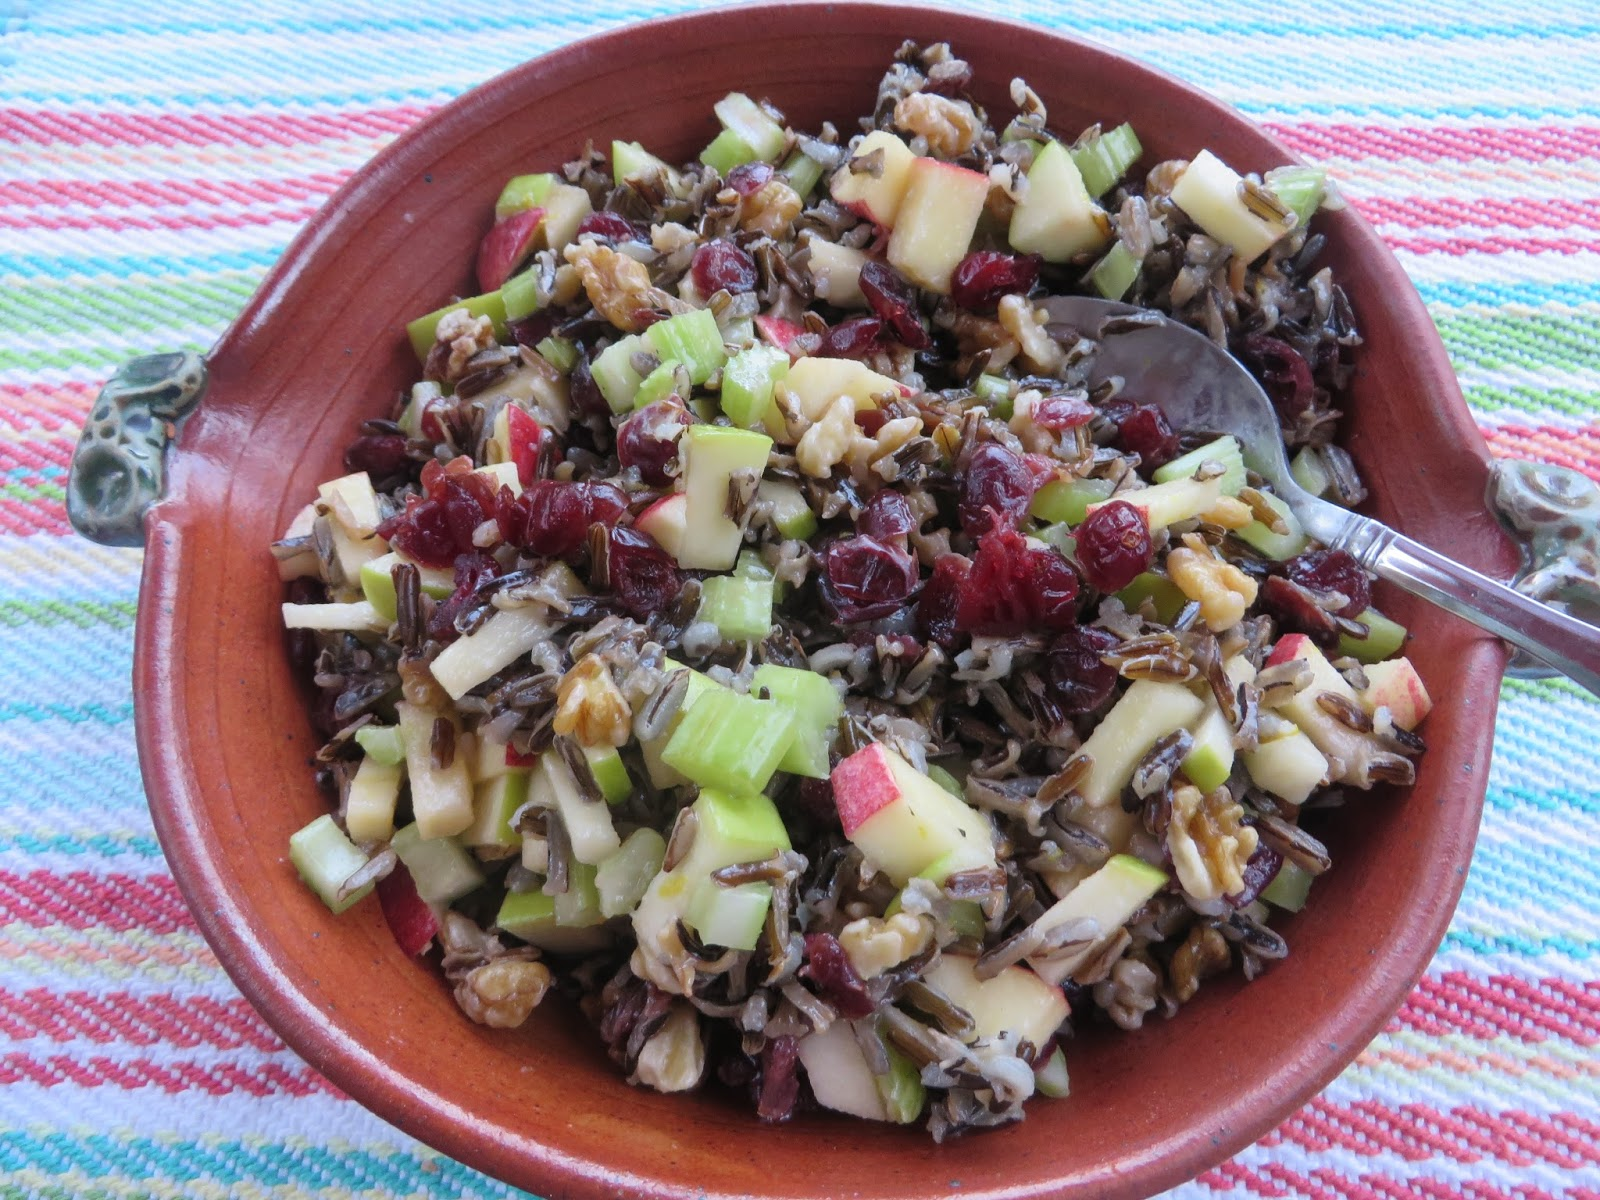 Wild Rice Salad with Apples, Celery and Cranberries